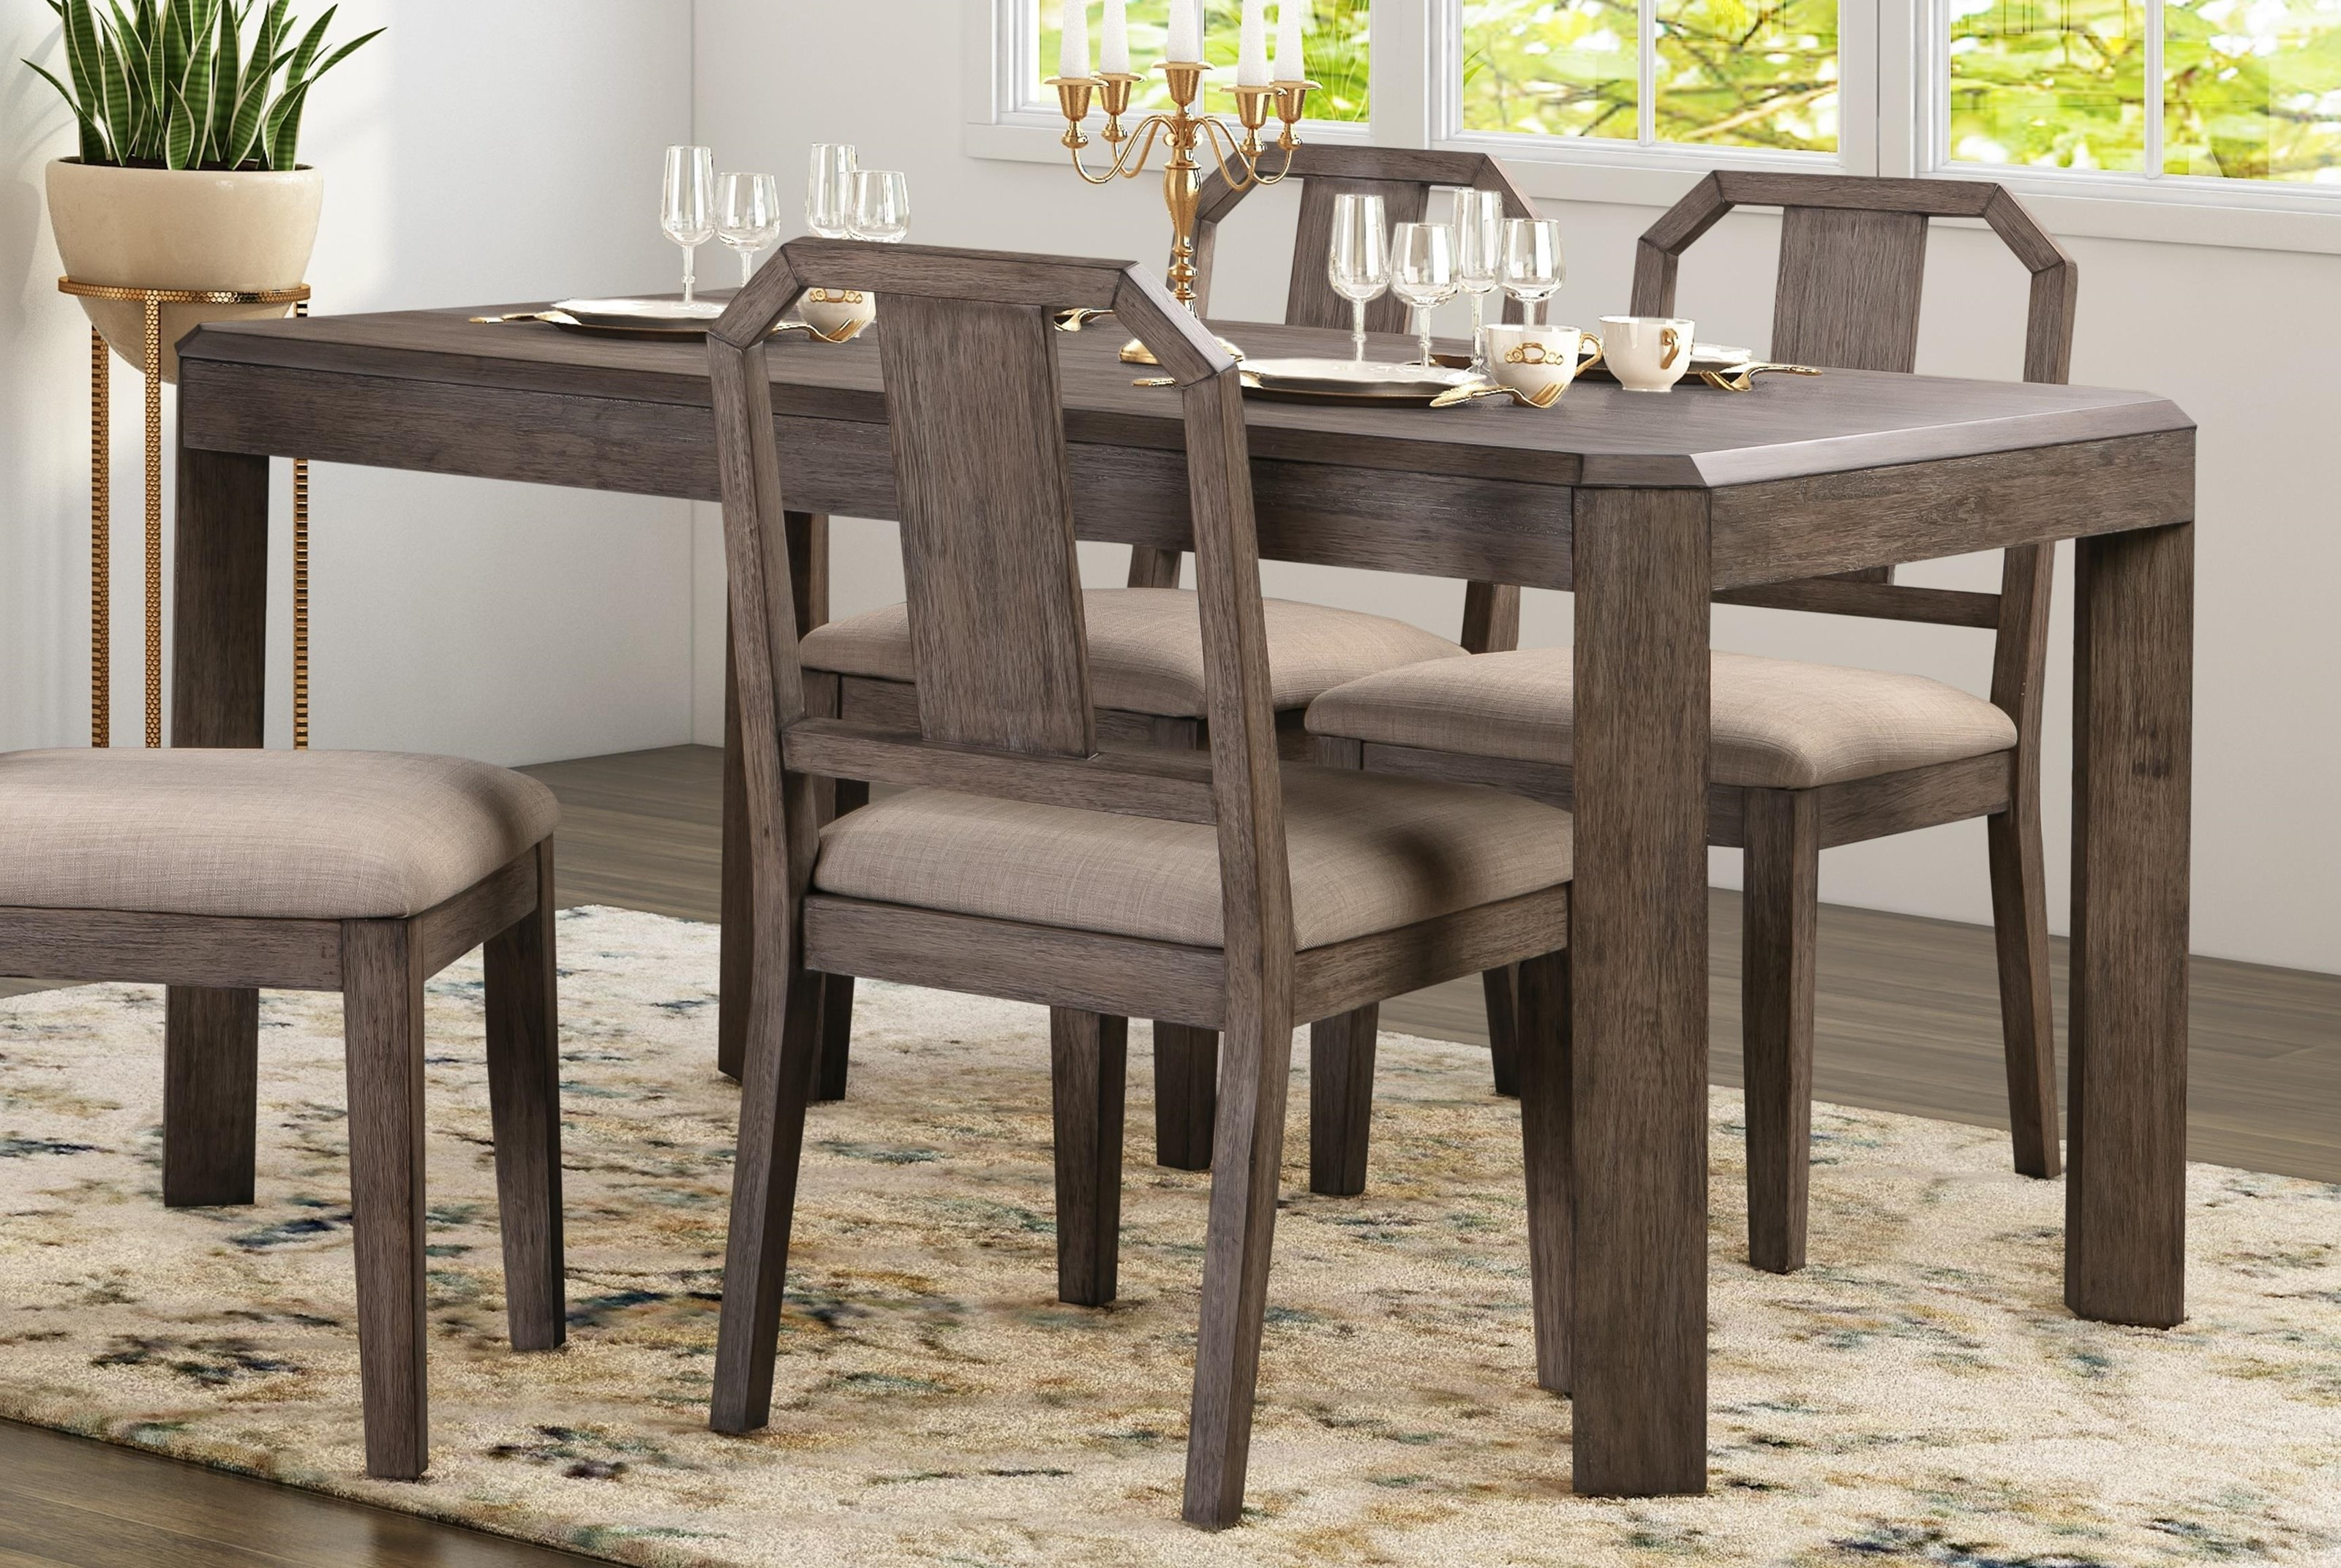 Anchorage Anchorage Dining Table by Modus International at Morris Home